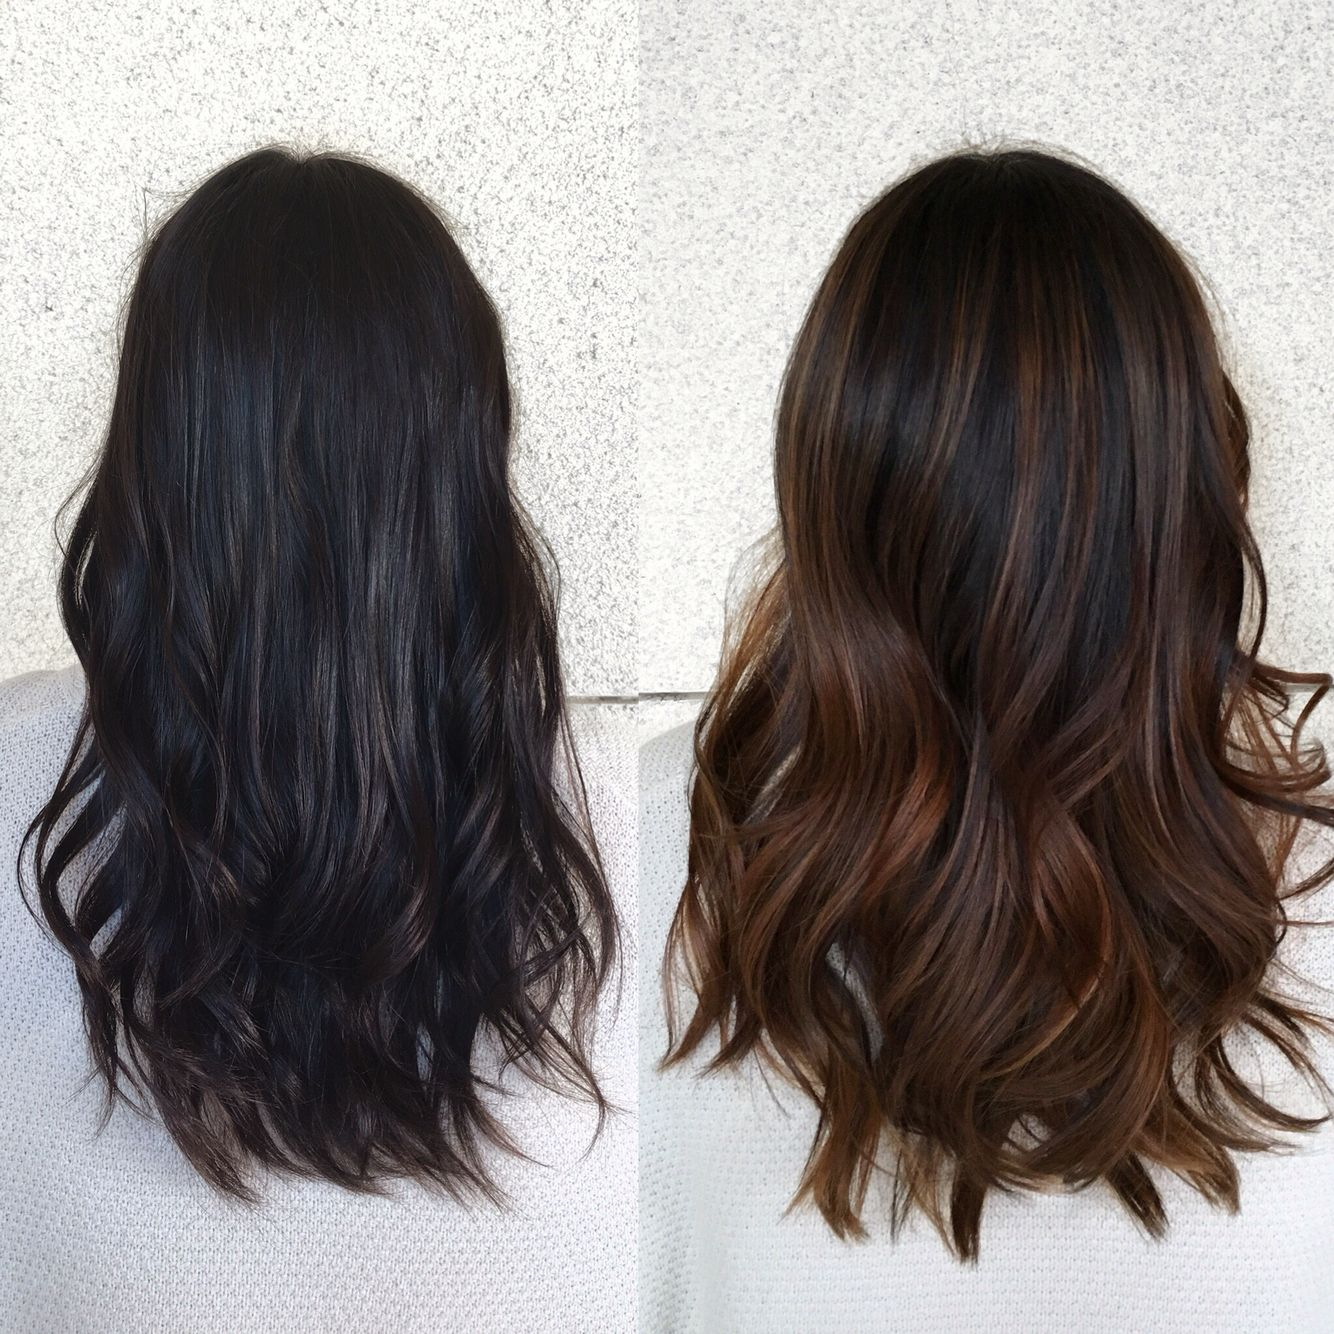 Pin By Elena Meza On Hair By Elena Hair Mocha Hair Balayage Hair